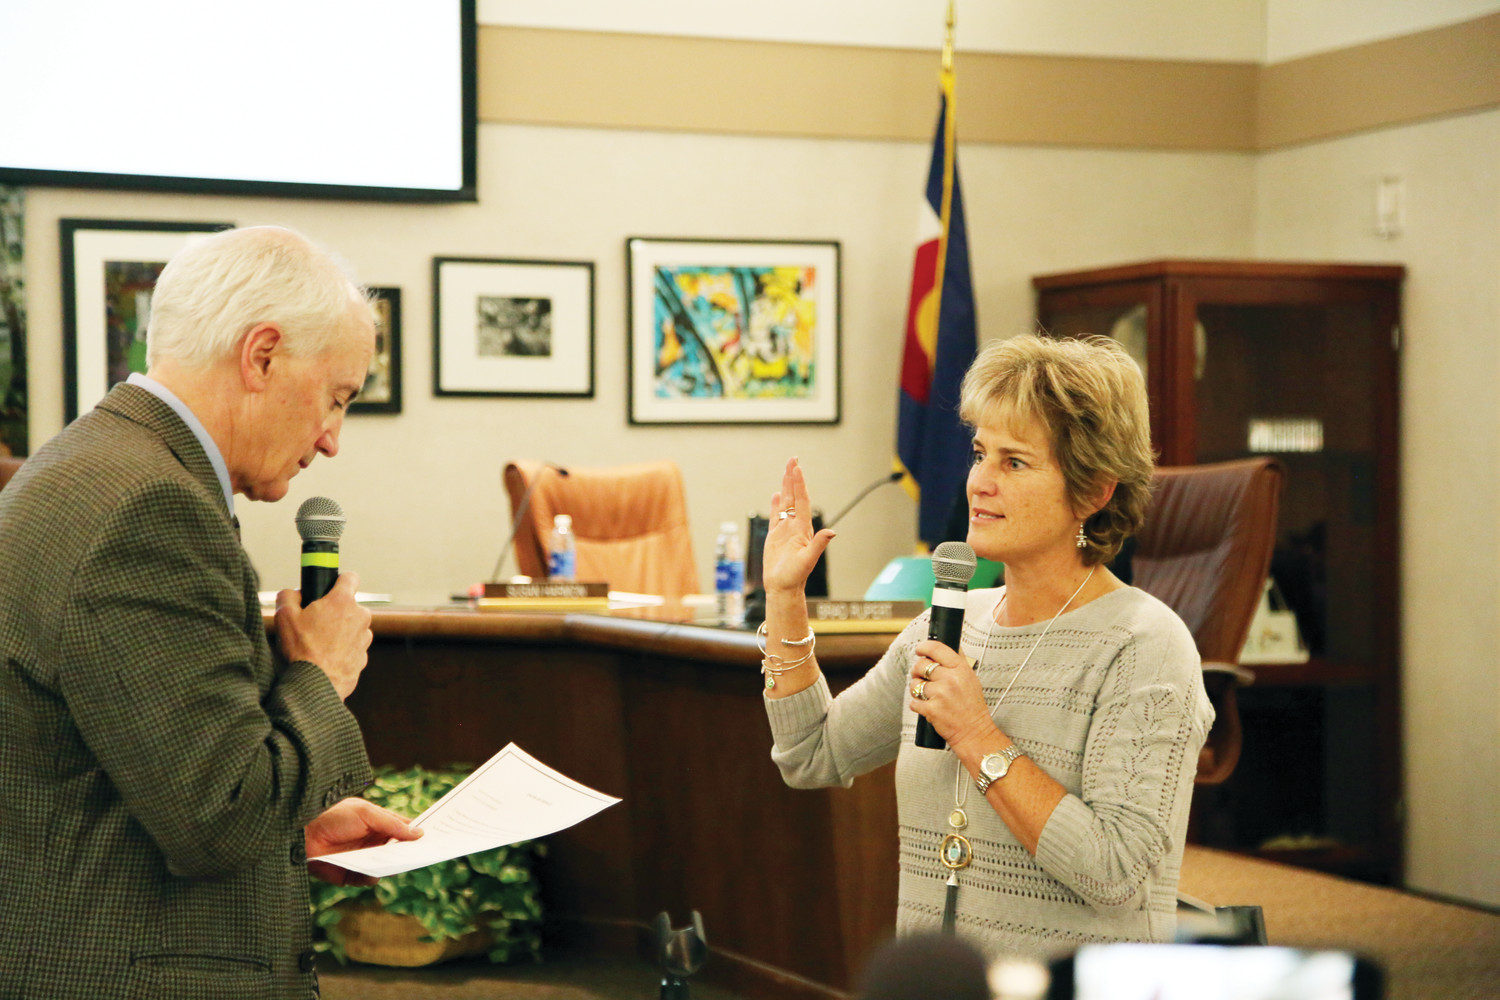 Susan Harmon is sworn in for another four years serving on the Board of Education for Jefferson County Public Schools at a special meeting on Nov. 27.